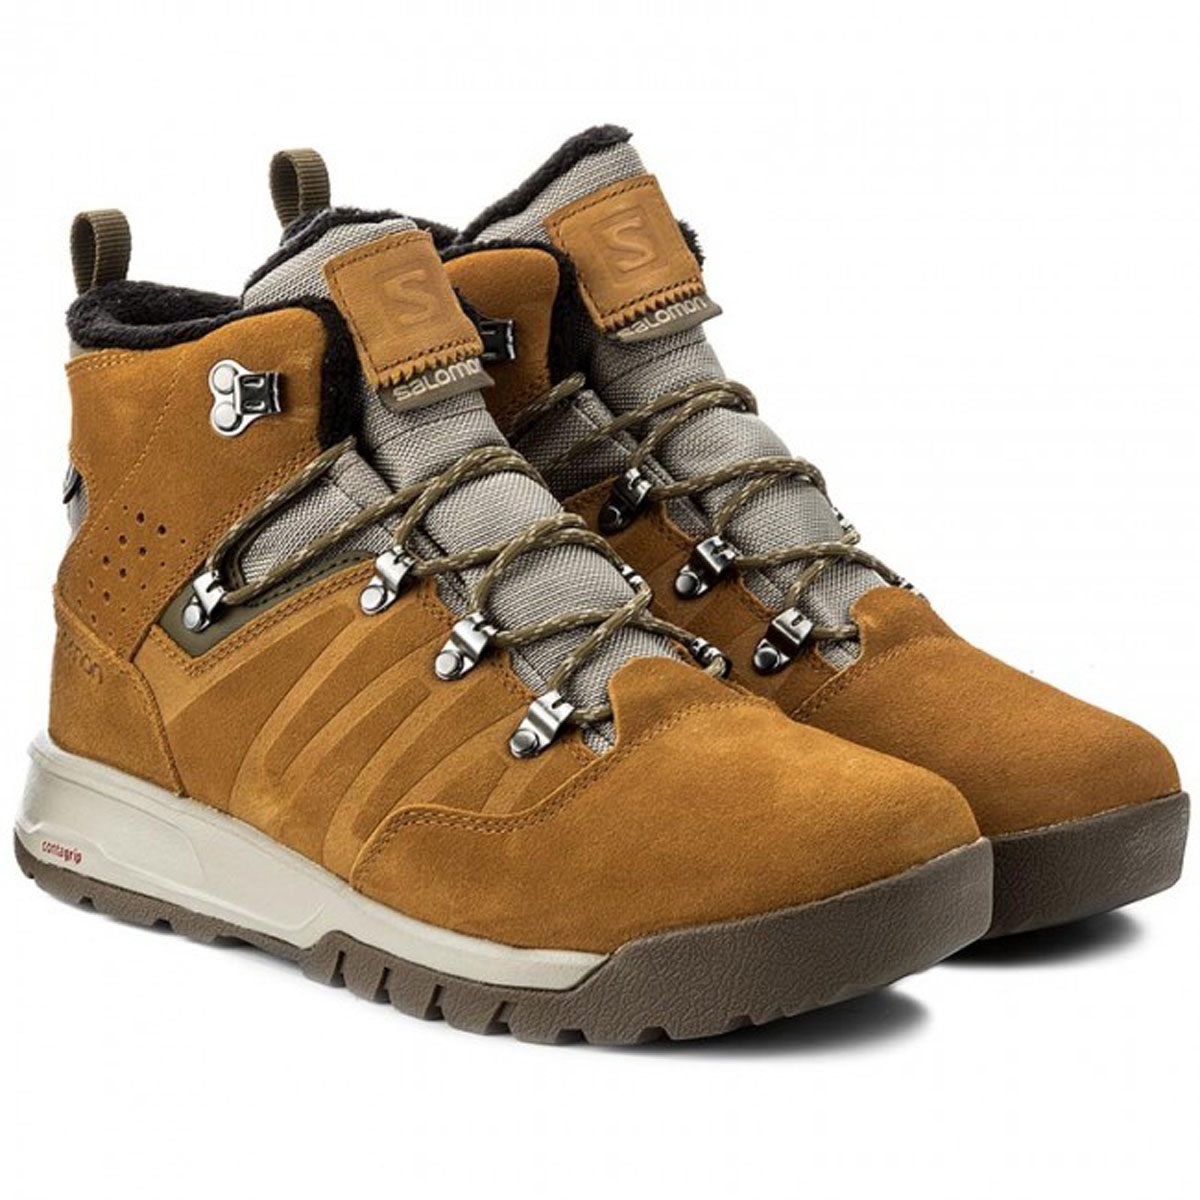 3df907c3b252 ... Image of Salomon Utility TS CSWP Walking Boots (Men s) - Vintage Kaki  Rawhide